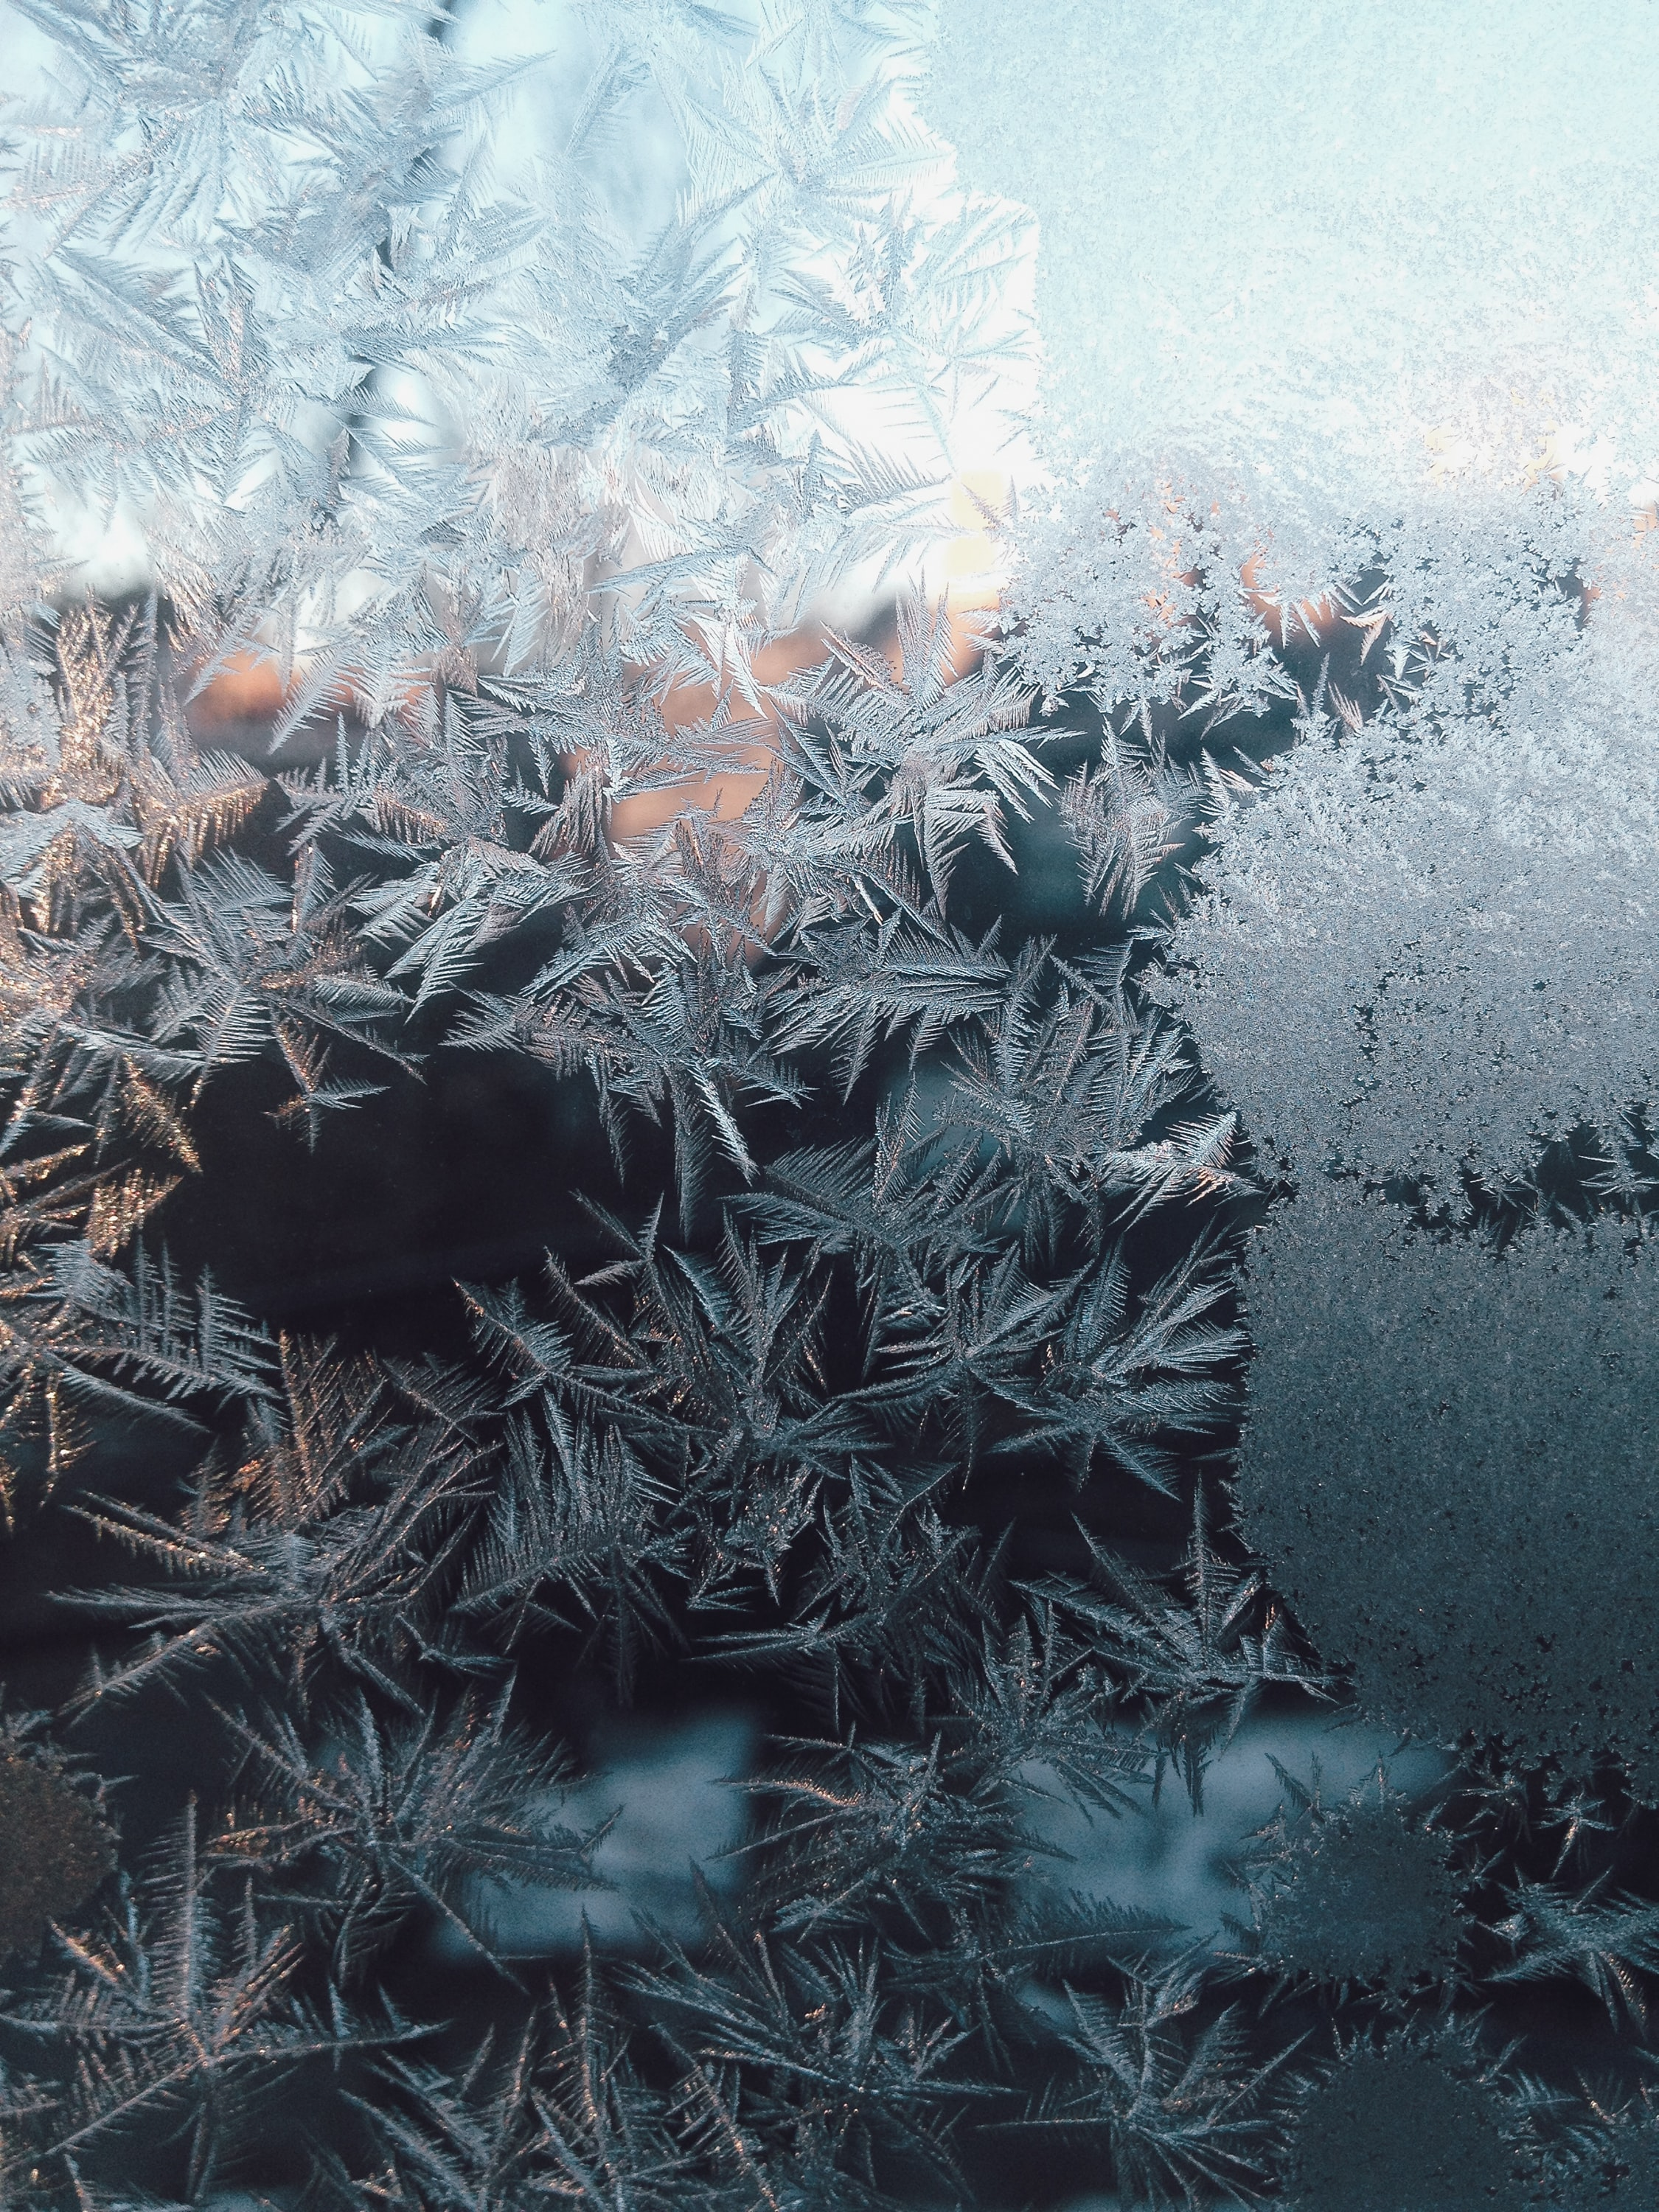 Photo of frosted leaves. Image courtesy of Kelly Sikkema via Unsplash.